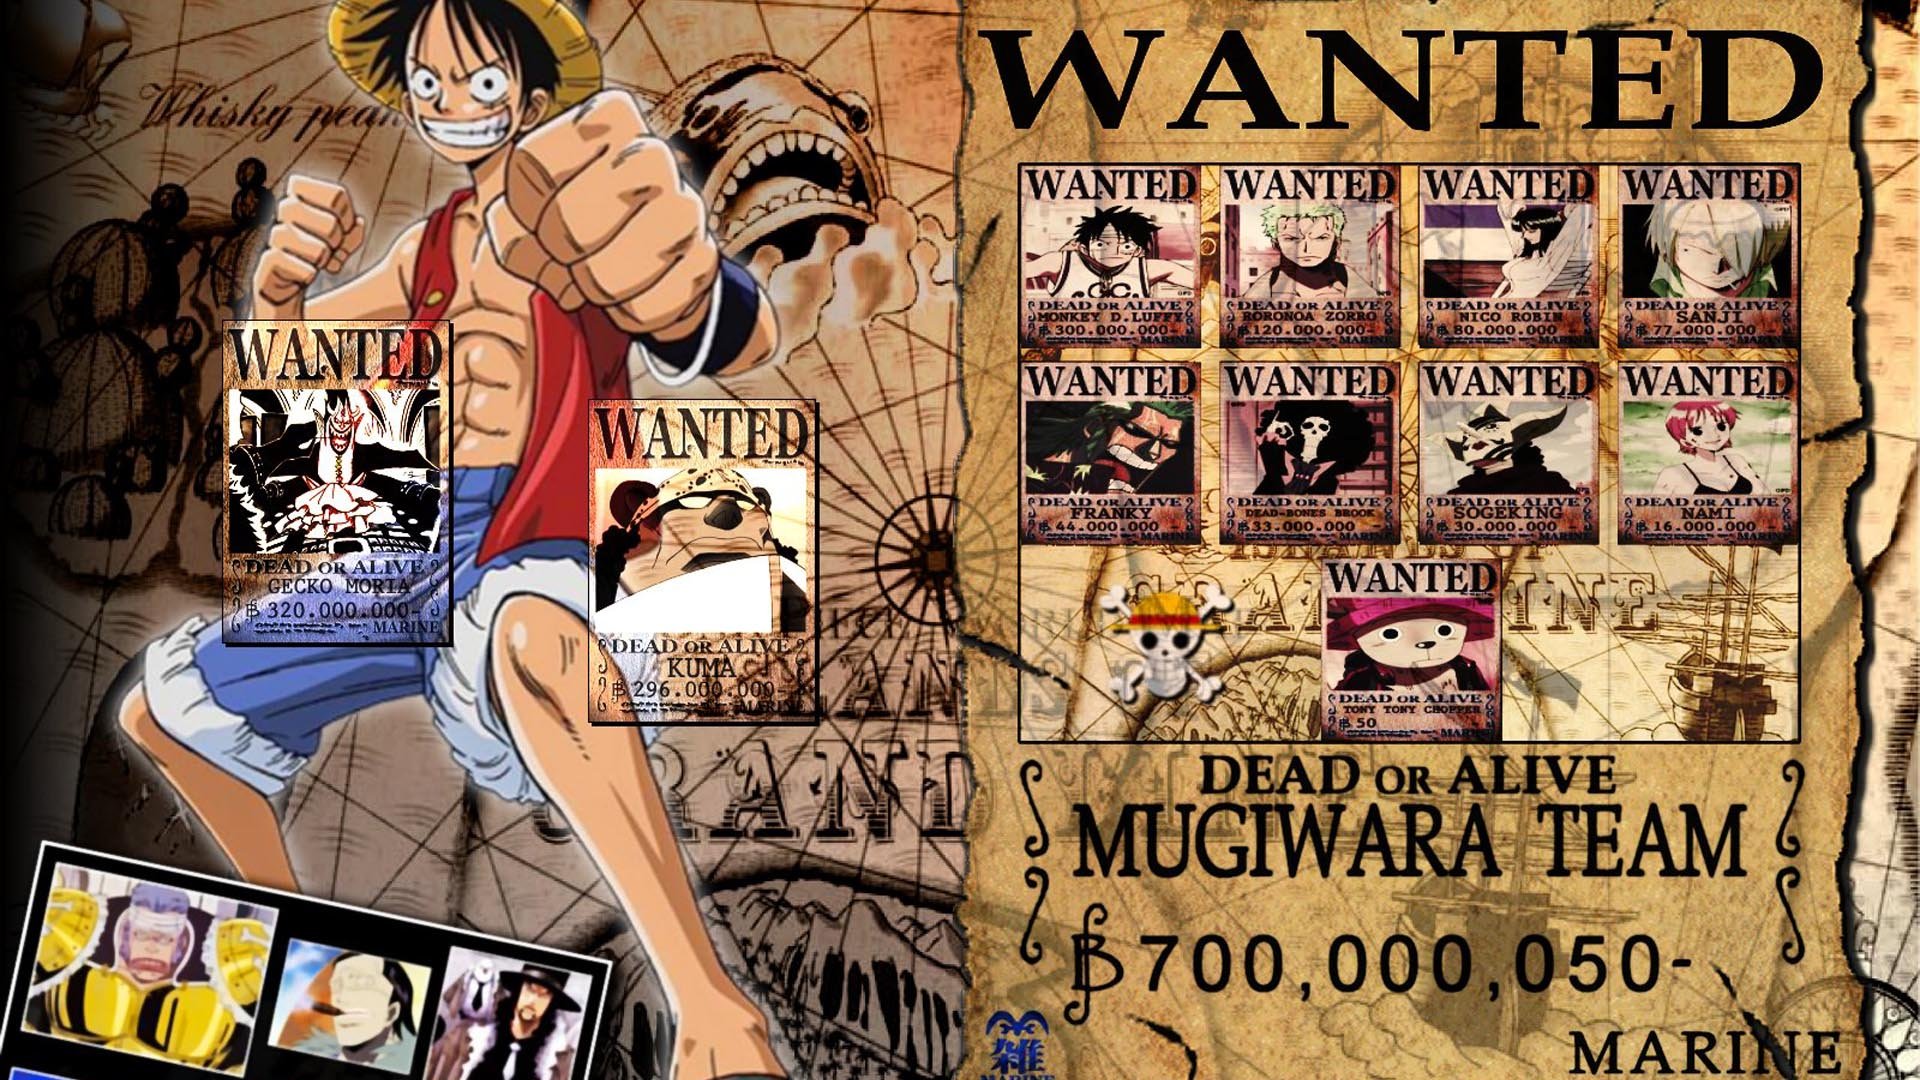 One Piece Wallpaper 1920x1080 Wallpapers 1920x1080 Wallpapers 1920x1080